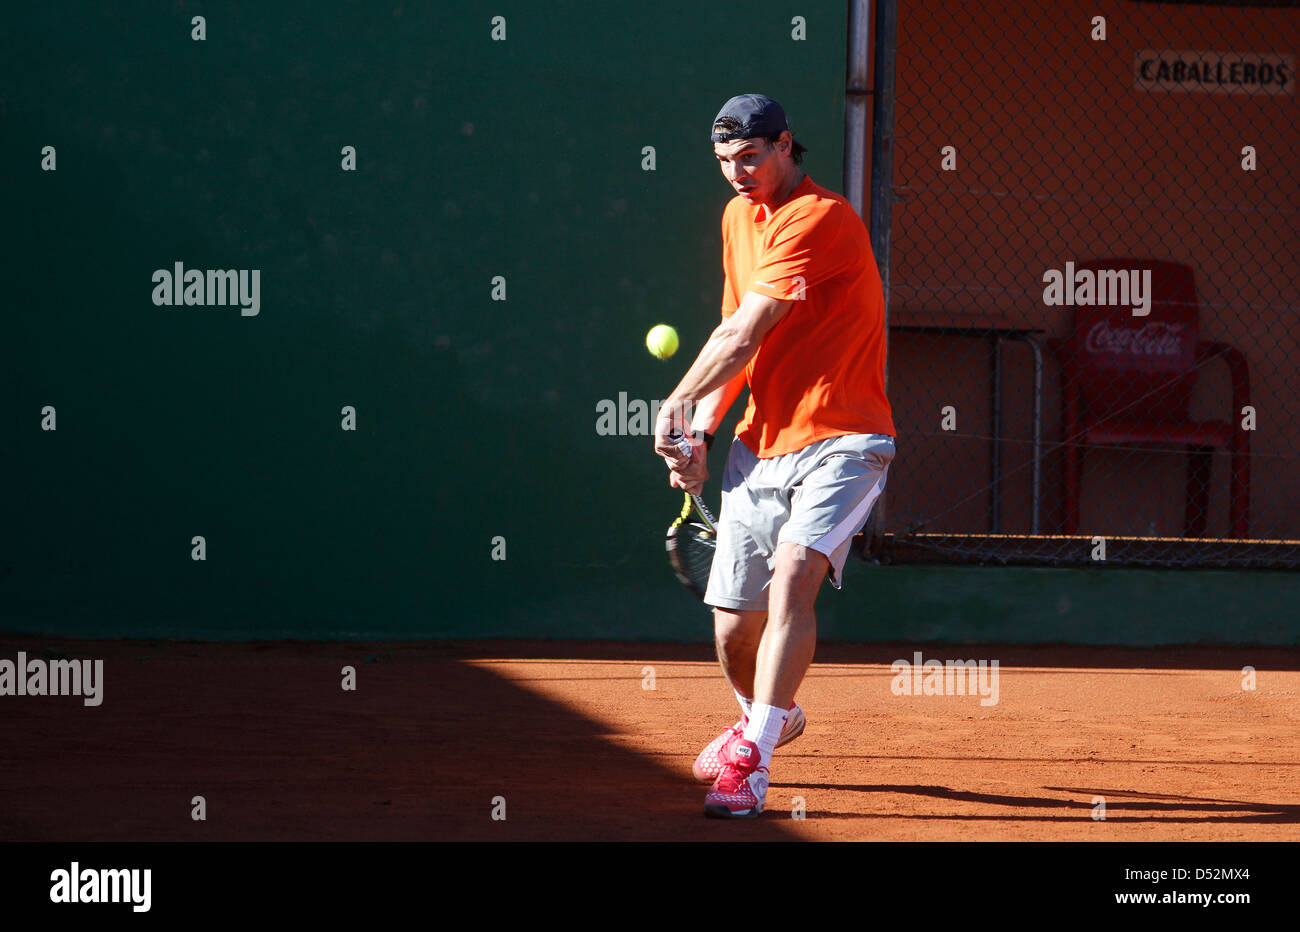 Page 2 Rafael Nadal Training High Resolution Stock Photography And Images Alamy